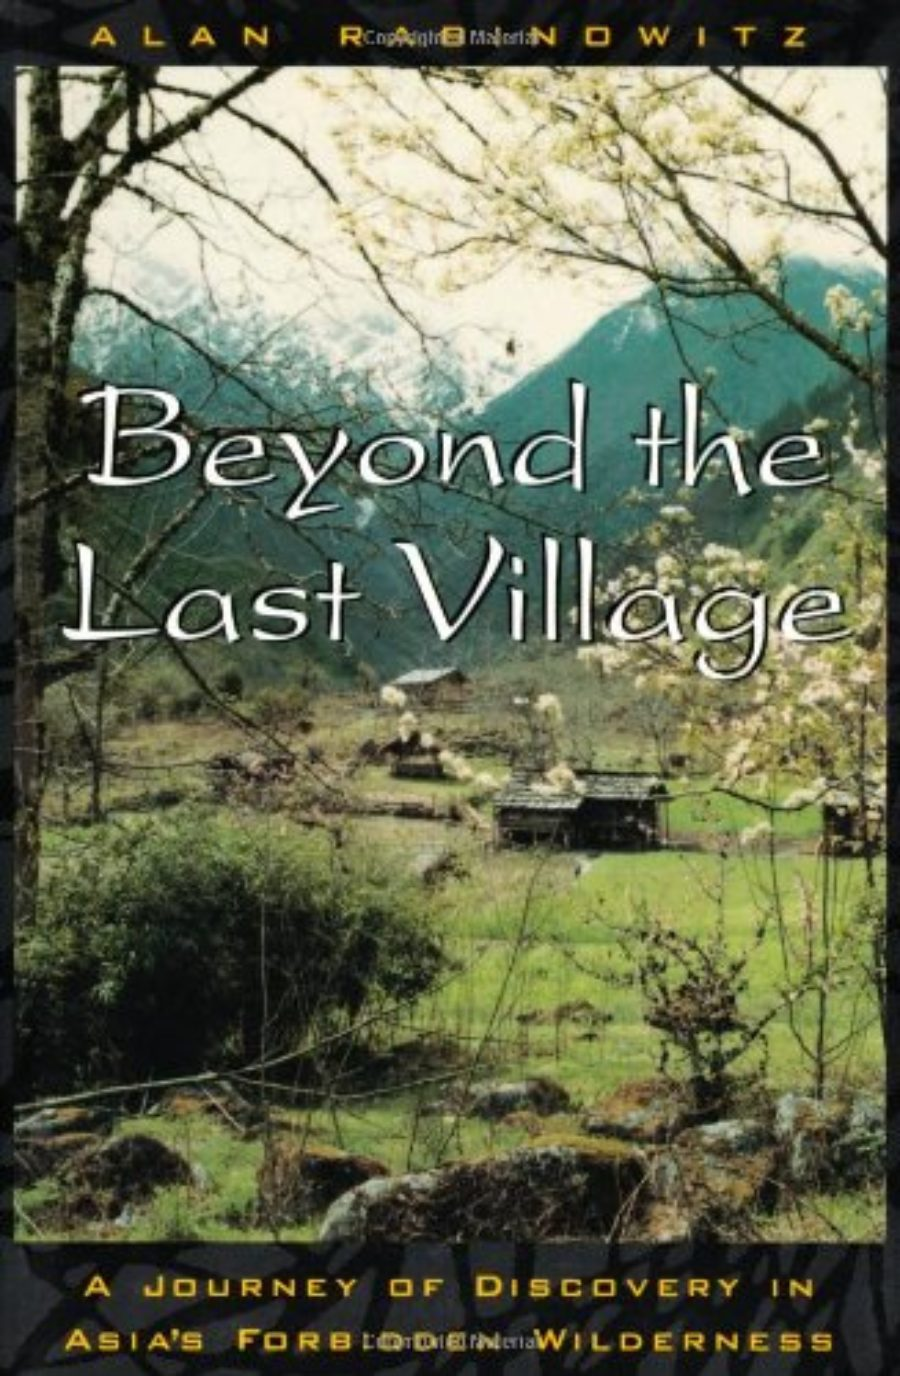 Cover of Beyond the Last Village: A Journey Of Discovery In Asia's Forbidden Wilderness